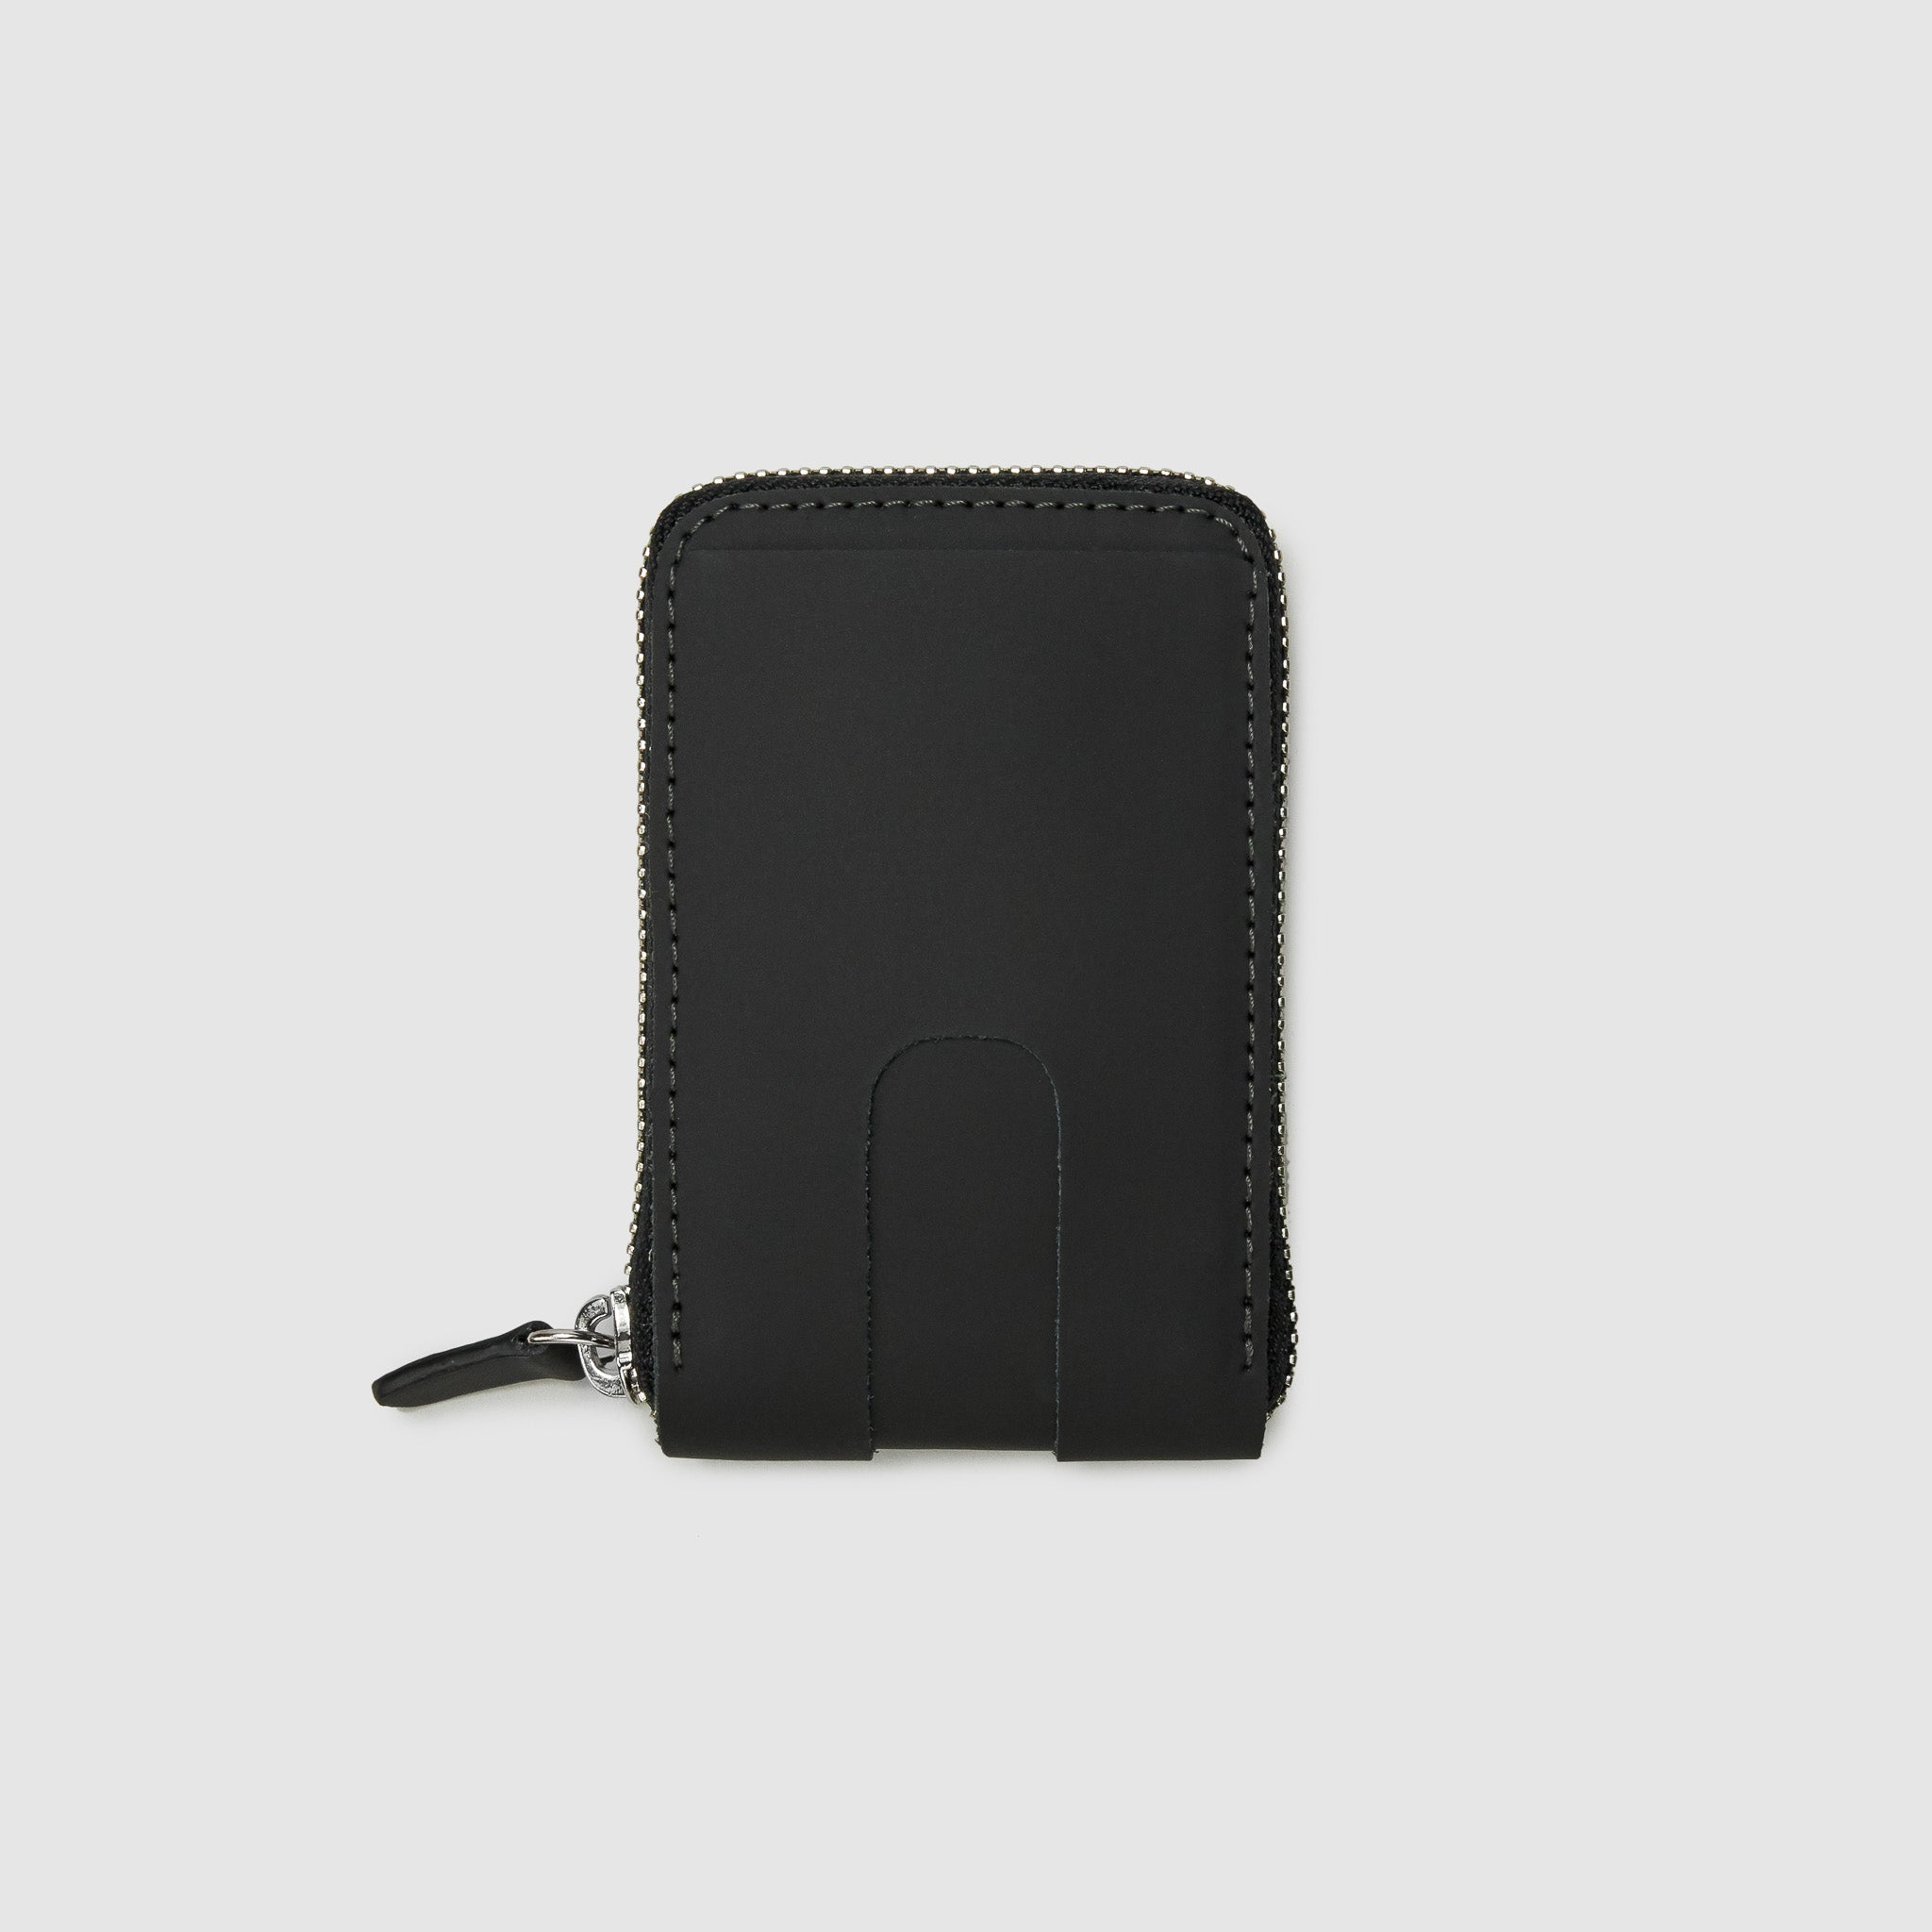 Anson Calder zip-around Wallet with zipper and pockets RFID sport leather _sport-black